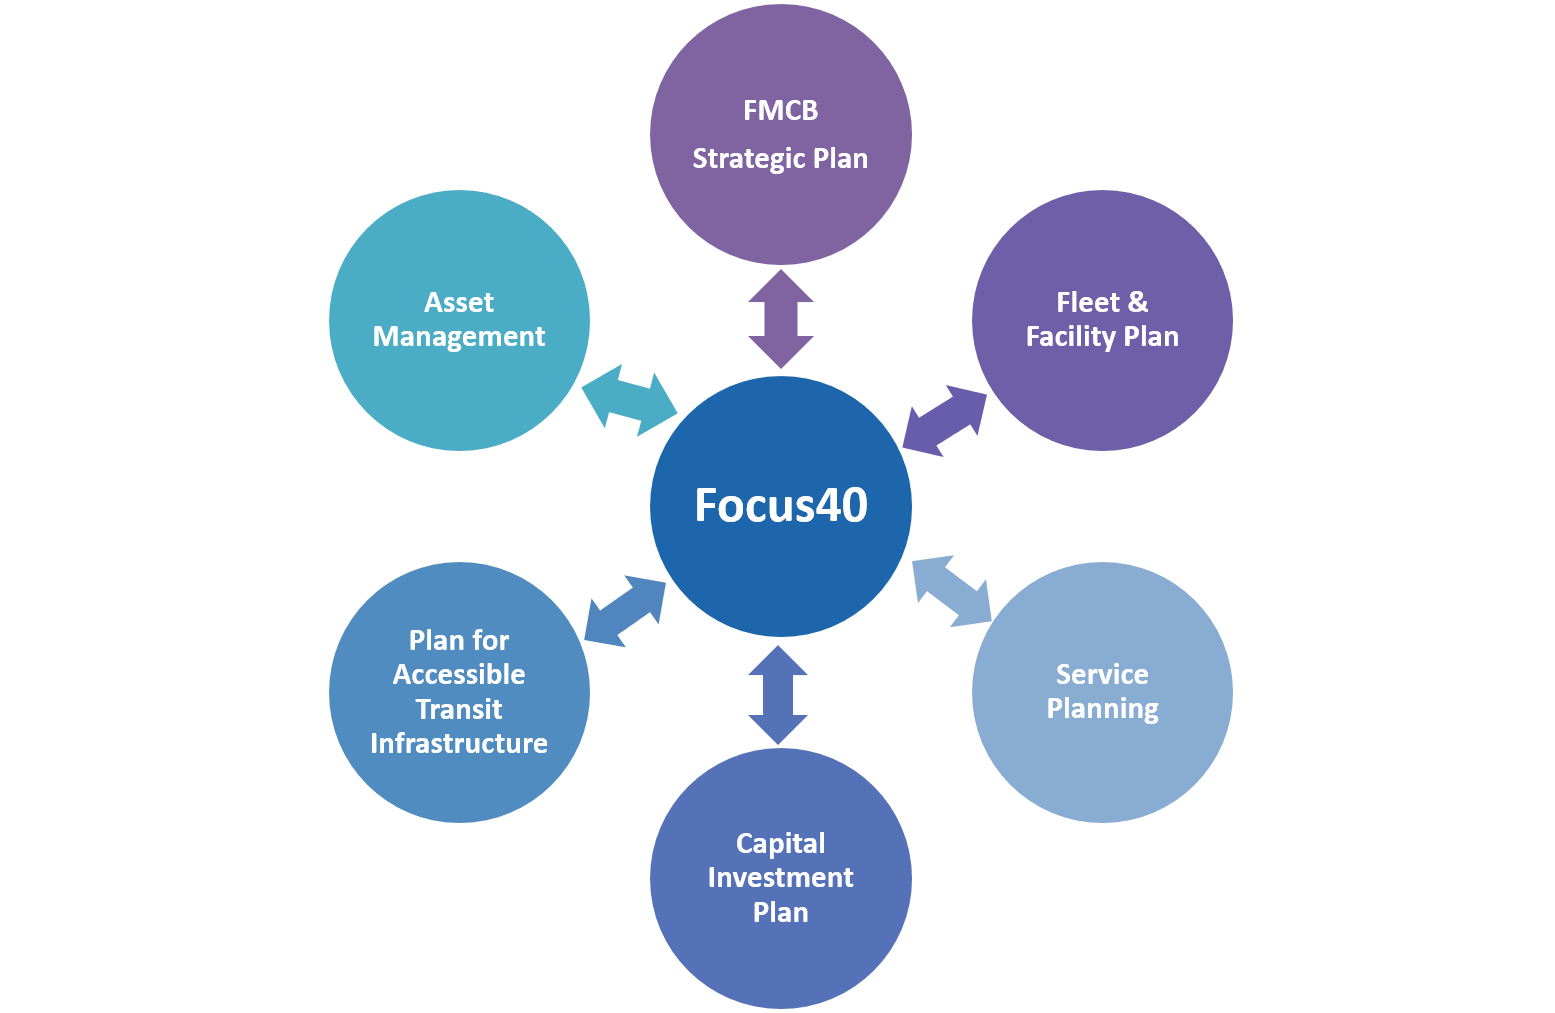 """Graphic showing the internal engagement process for Focus40. A circle with the text """"Focus40"""" is in the center, and six circles connected to the center circles with arrows show the following: """"FMCB Strategic Plan"""", """"Fleet & Facility Plan"""", """"Service Planning"""", """"Capital Investment Plan"""", """"Plan for Accessible Transit Infrastructure"""", and """"Asset Management."""""""